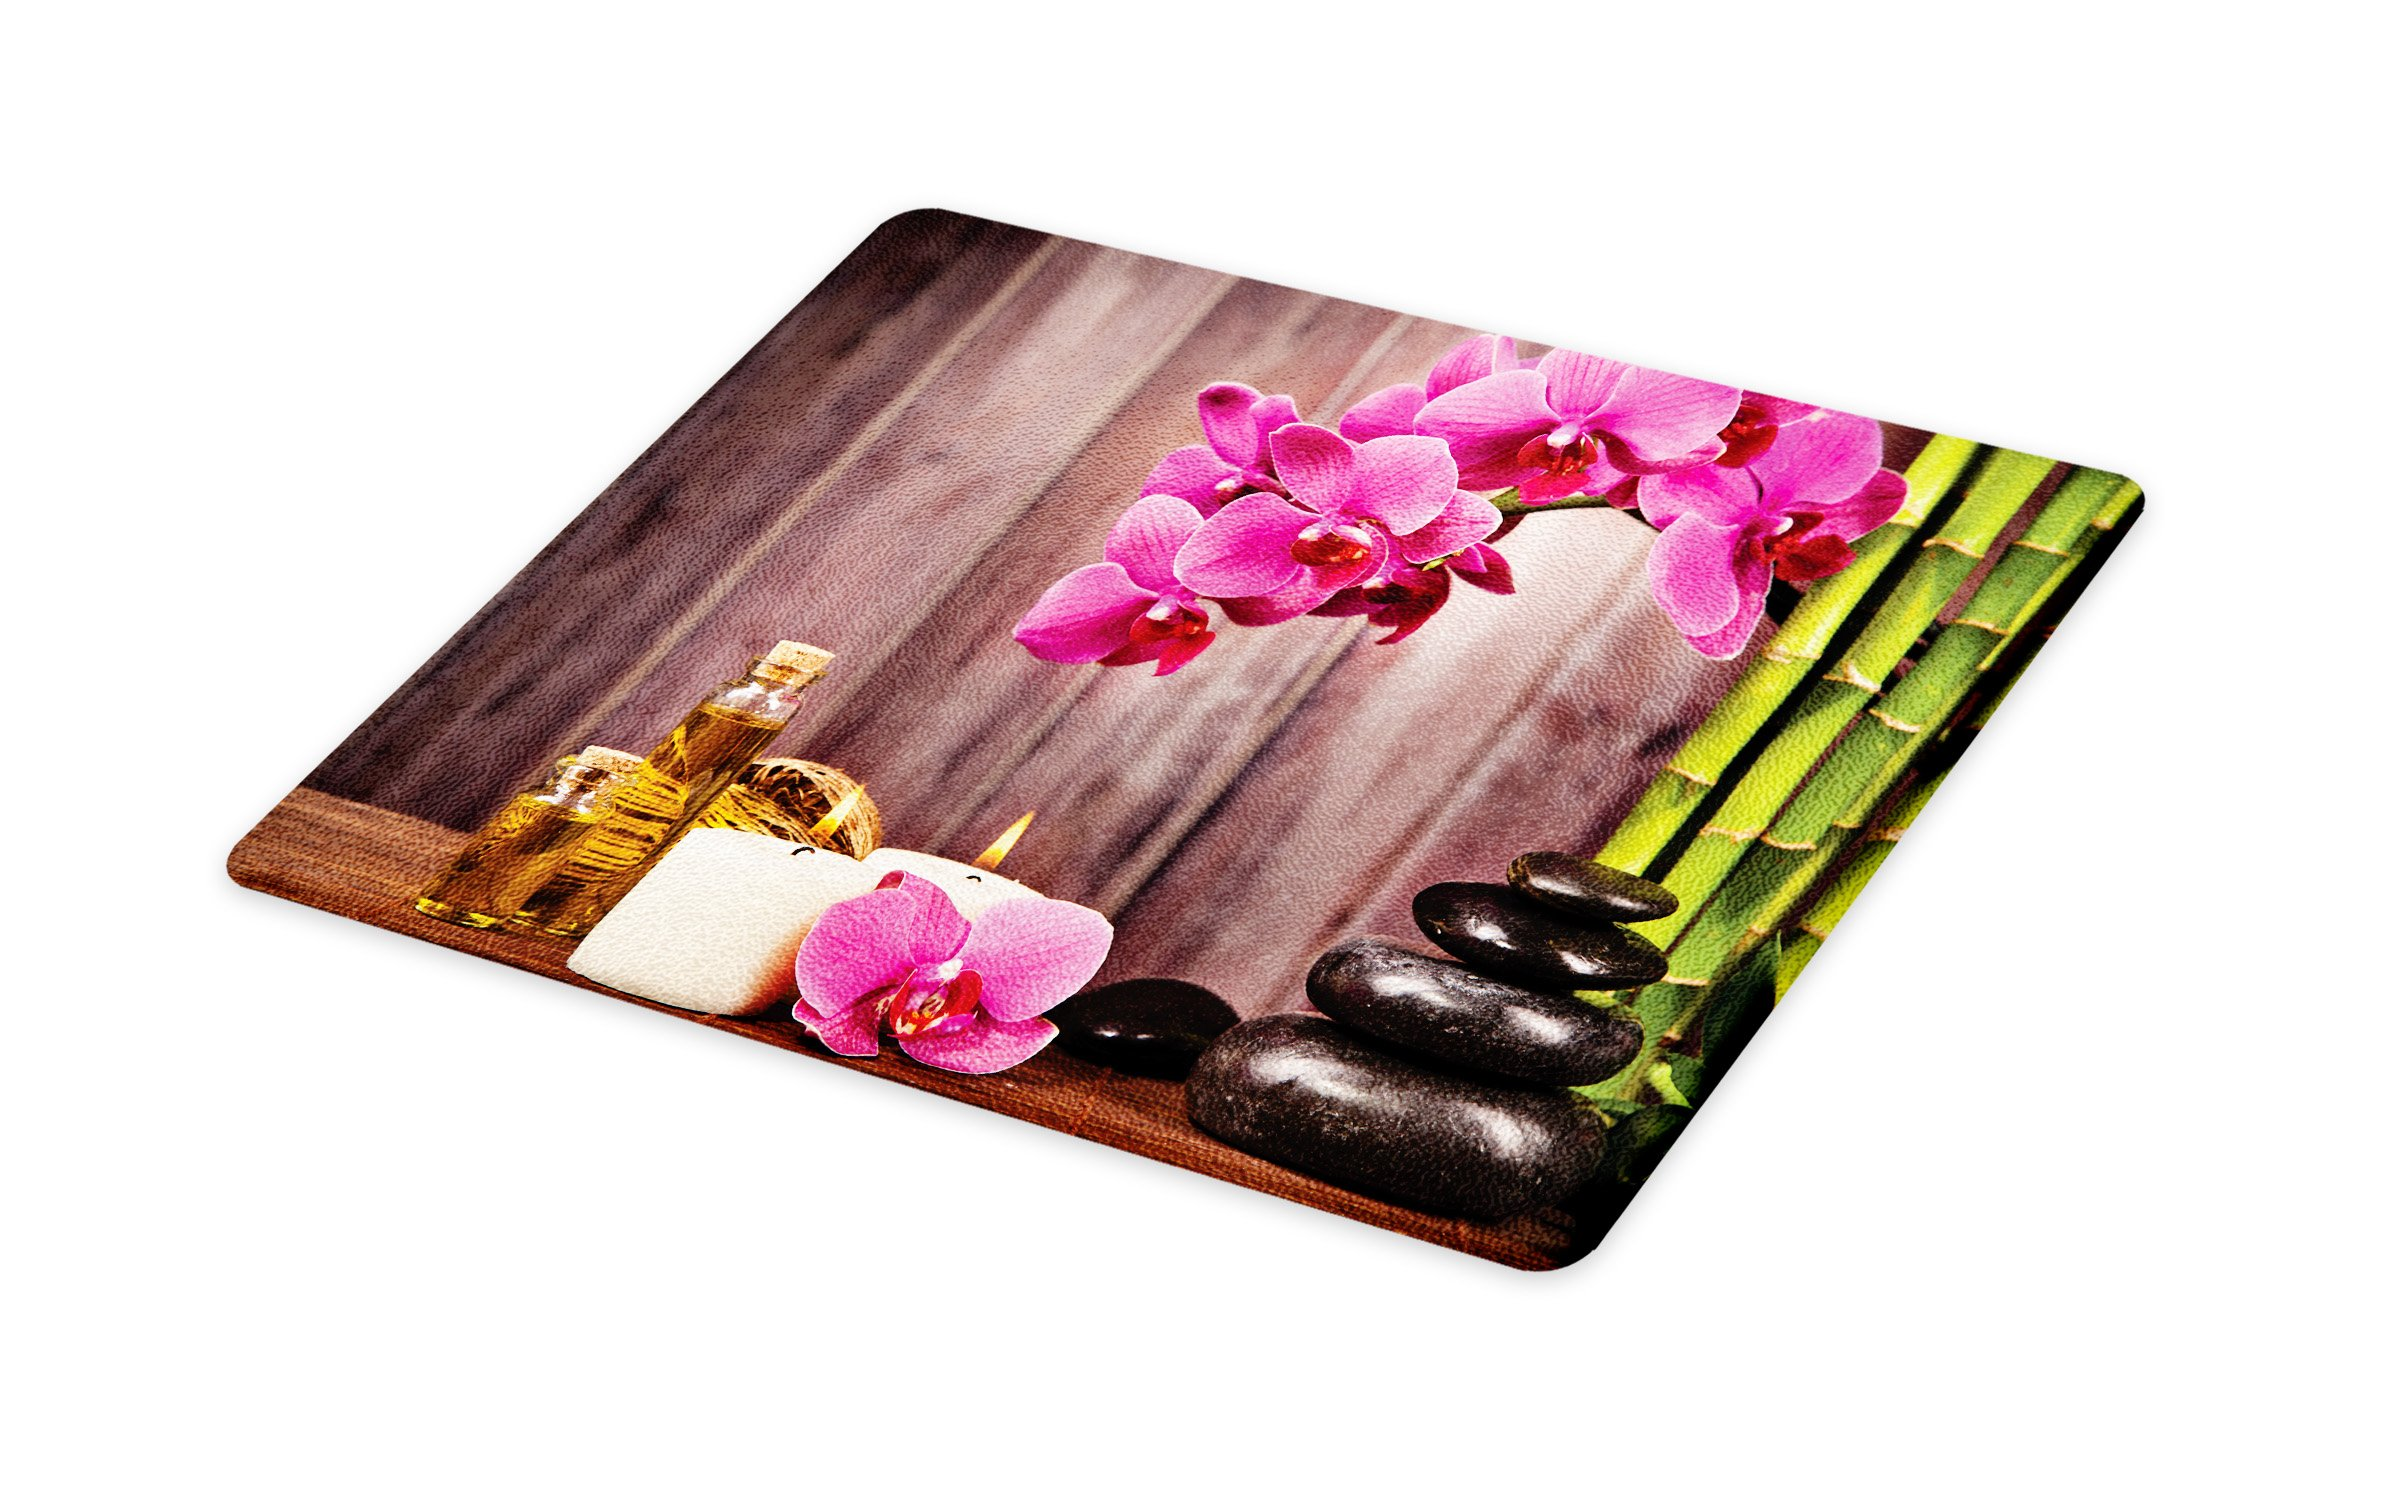 Lunarable Spa Cutting Board, Spa Orchid Flowers Rocks Bamboo Asian Style Aromatherapy Massage Therapy Print, Decorative Tempered Glass Cutting and Serving Board, Small Size, Pink Green Umber